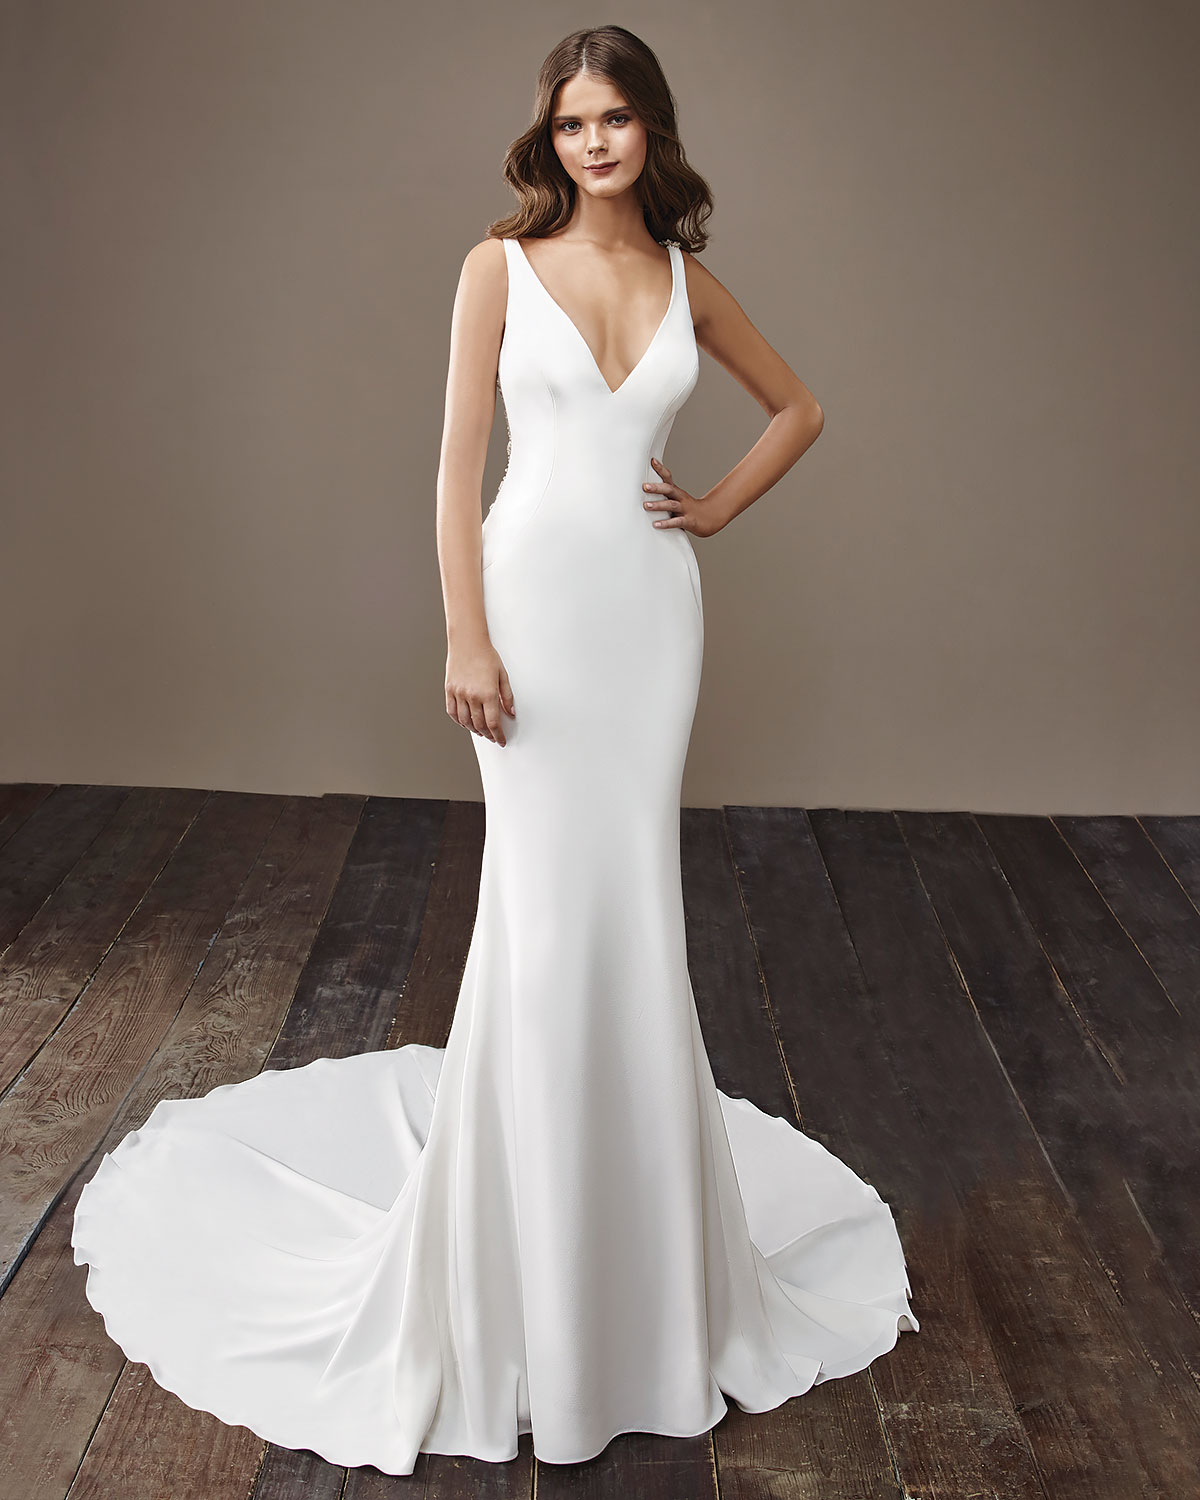 VOWS Bridal Outlet | Discounted Designer Gowns img13